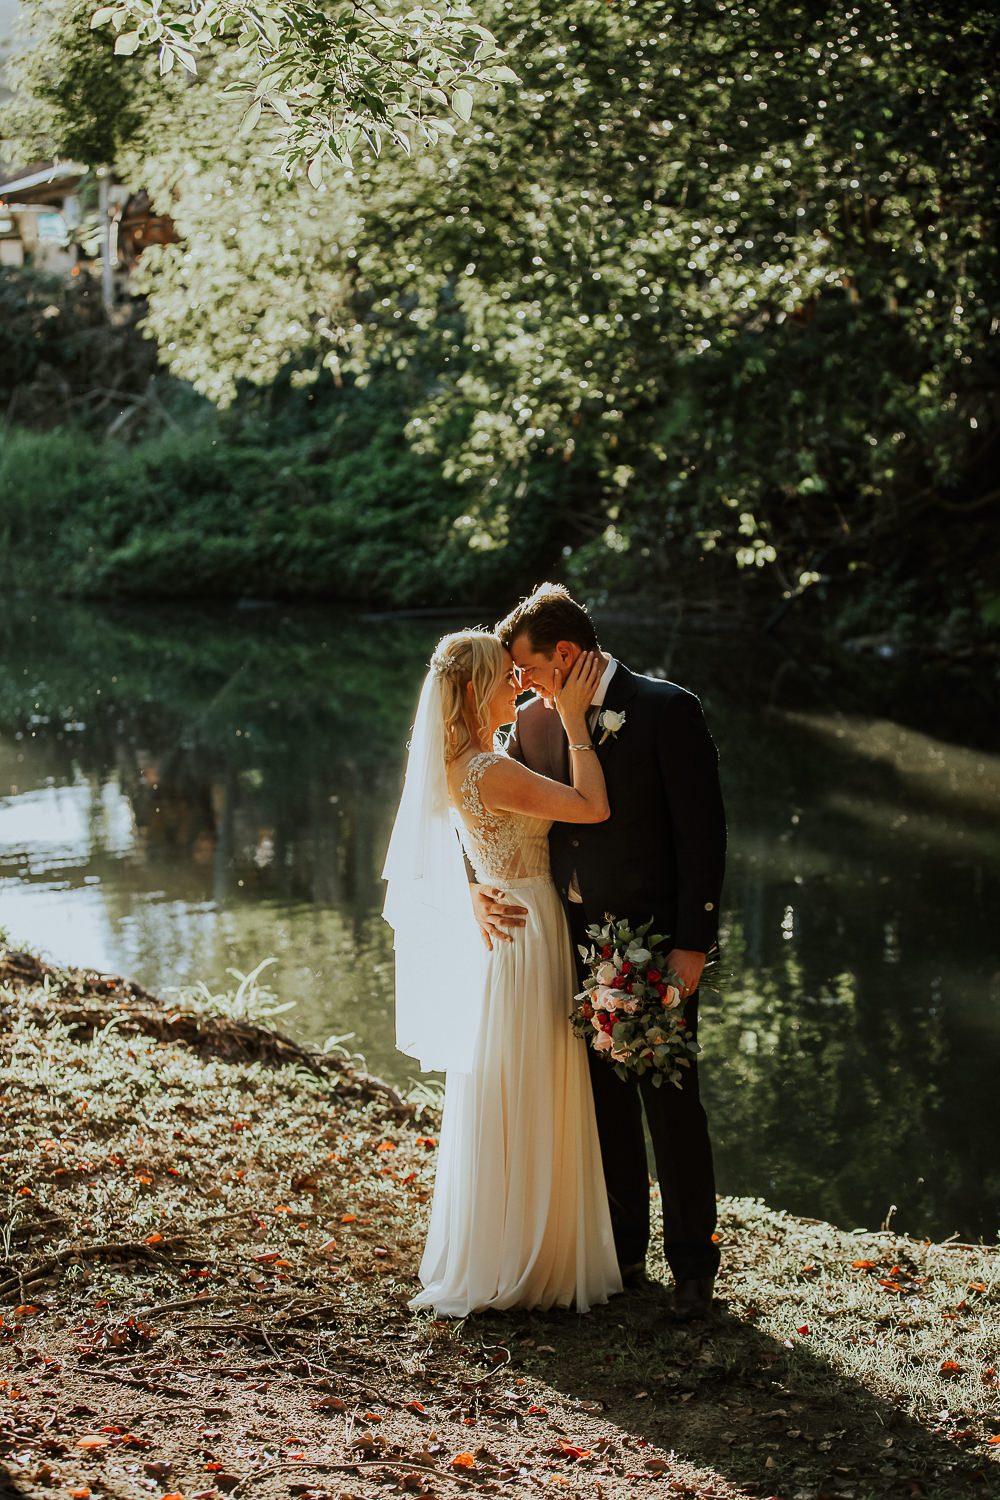 Gold_Coast_Hinterland_Barn_Wedding_Boomerang_Farm_Creek_True_North_Photography-3.jpg